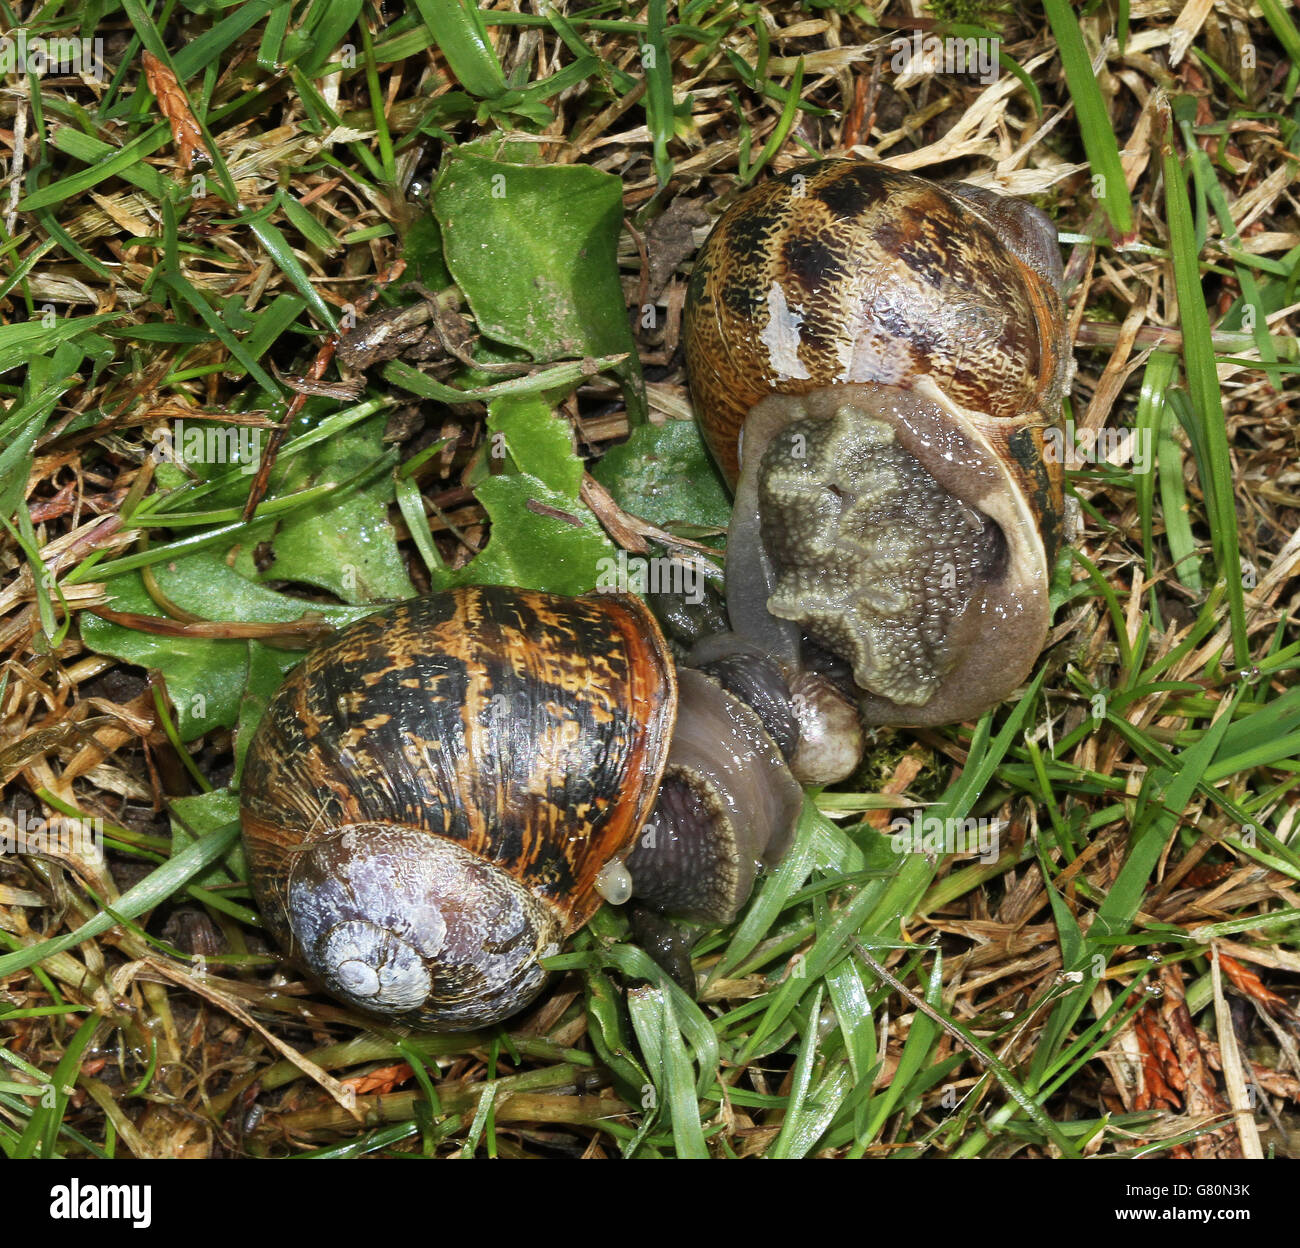 Garden snails mating in grass. - Stock Image